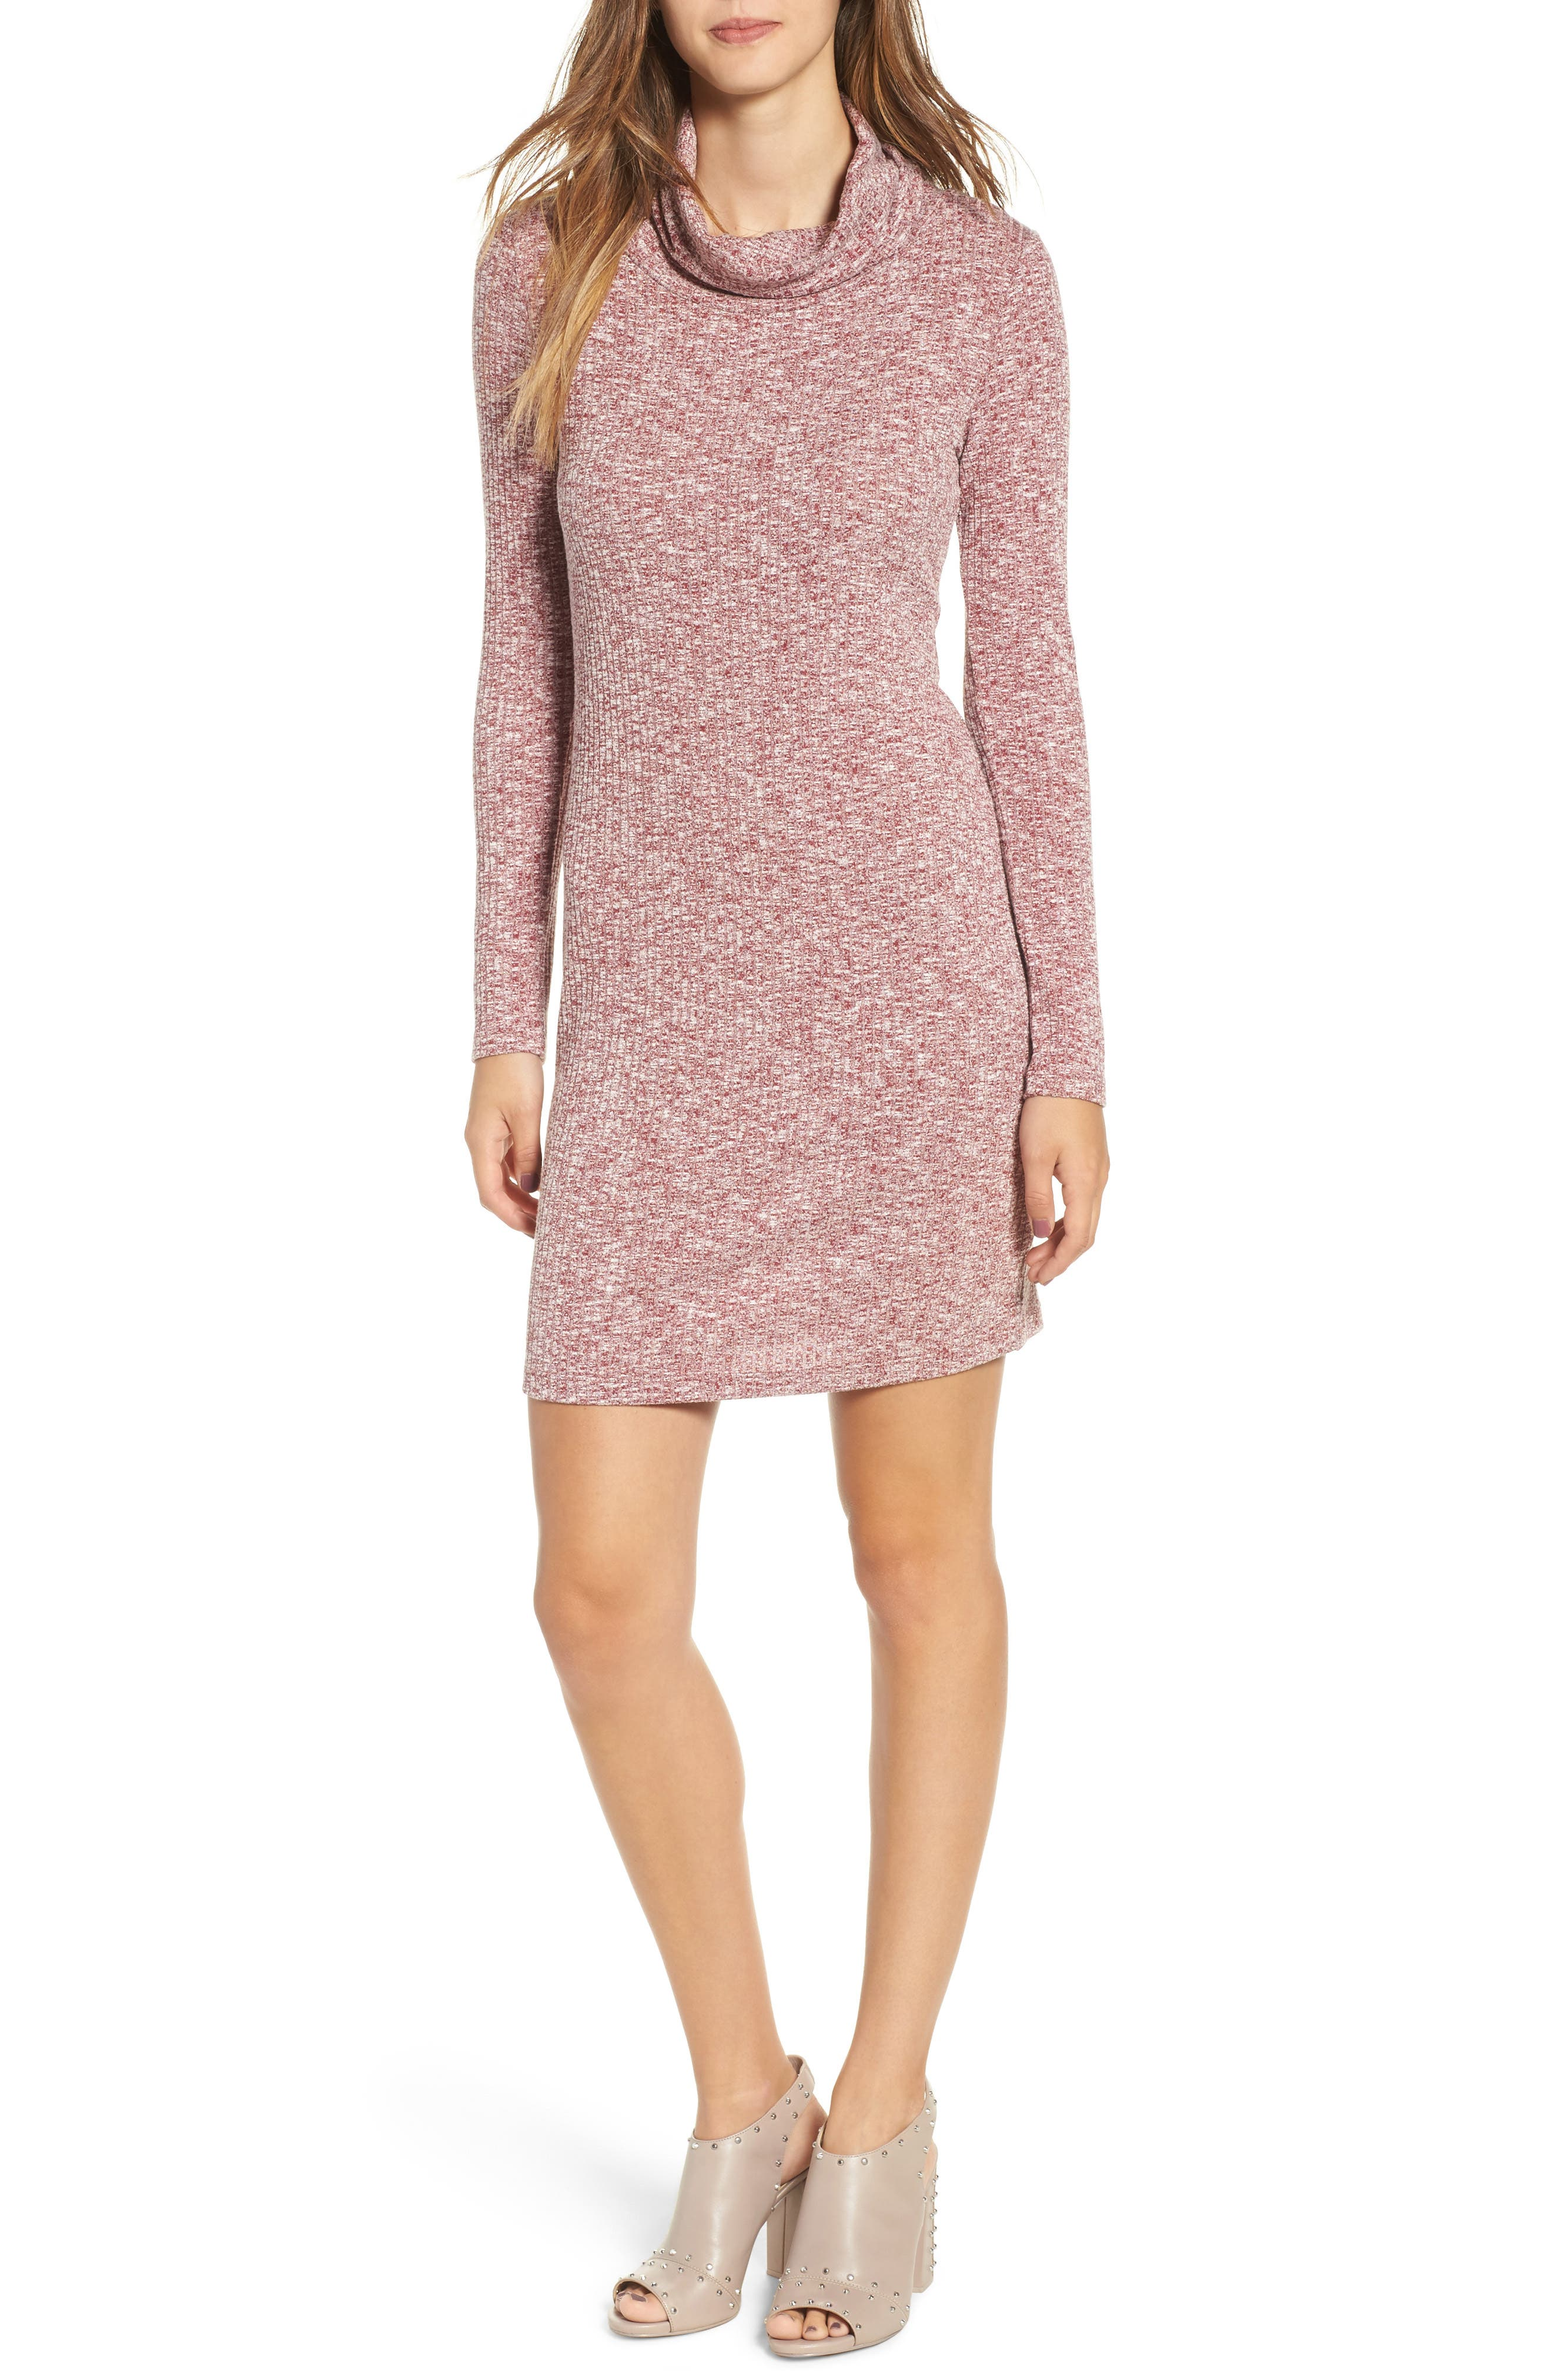 Everly Knit Turtleneck Dress